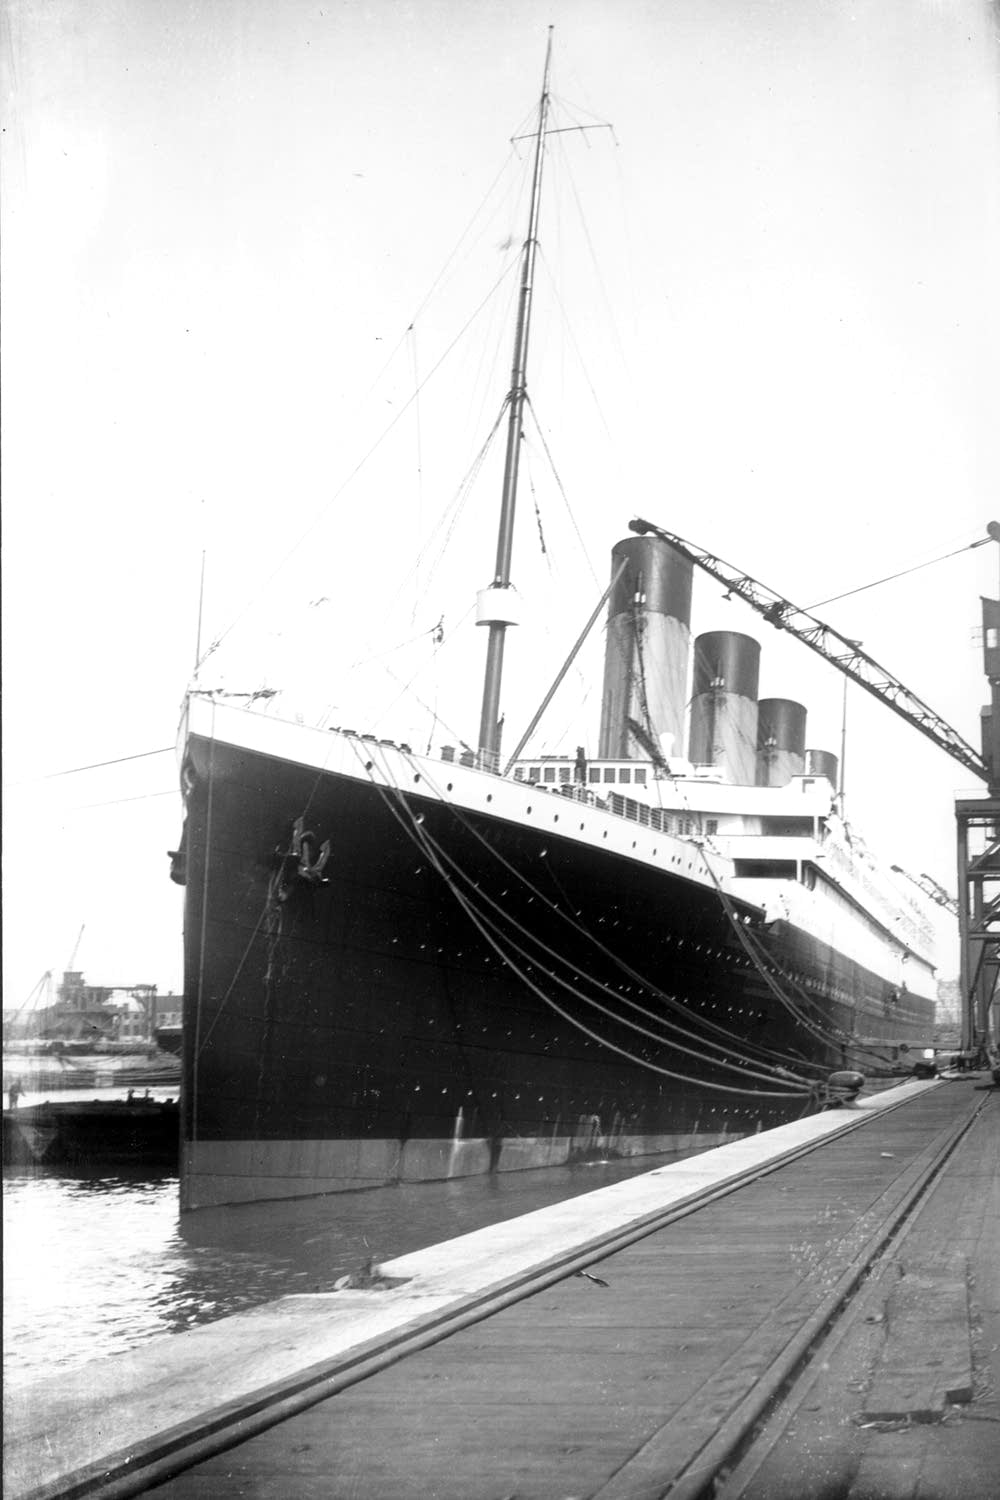 The Titanic at its dock in Southampton